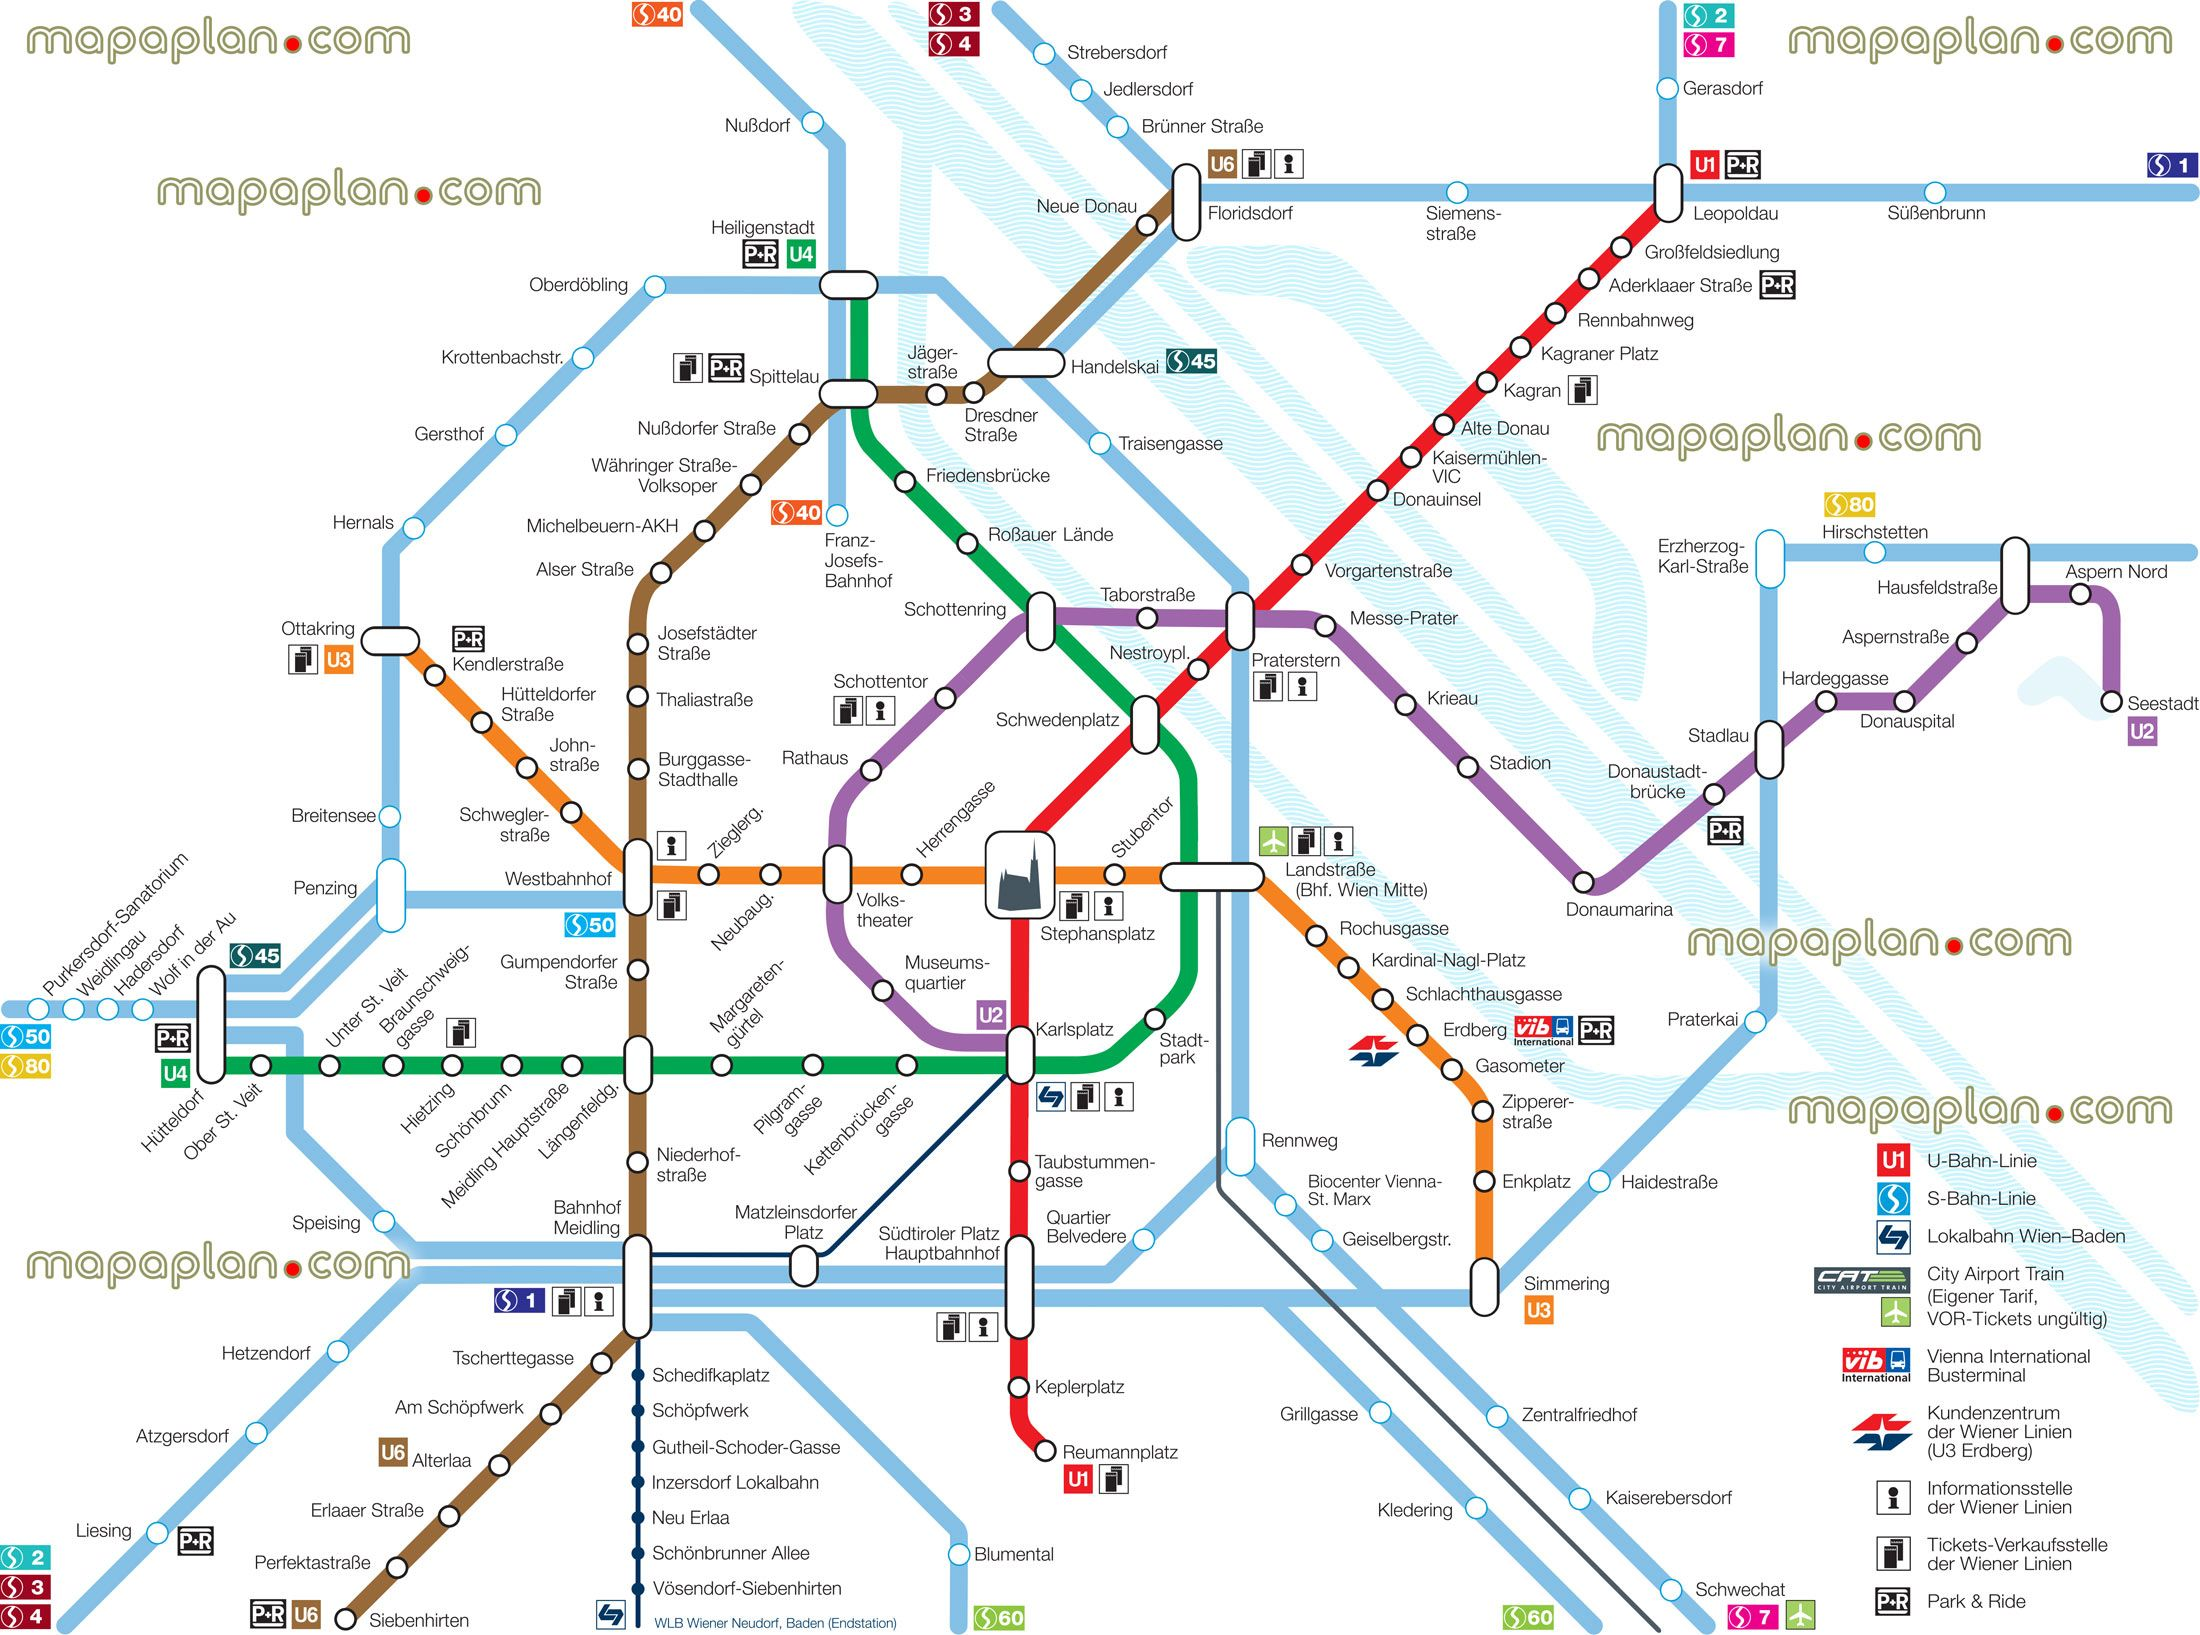 vienna u bahn metro tube underground subway stations zones marked